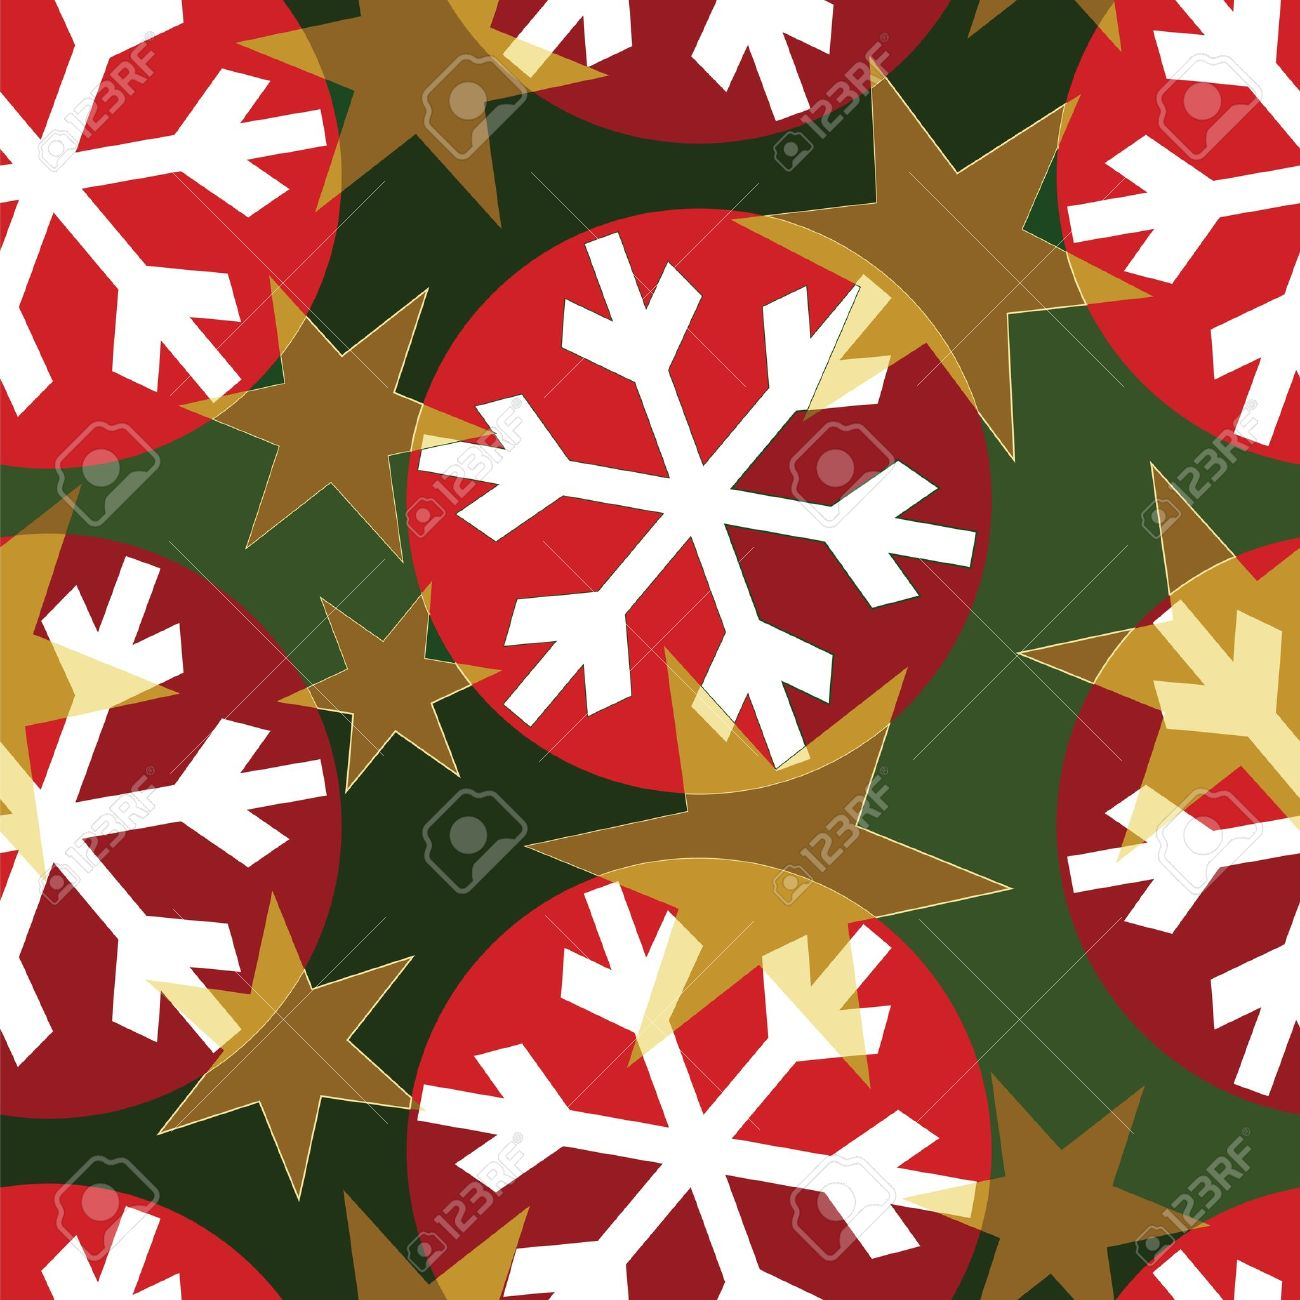 Design for Christmas wrapping paper.